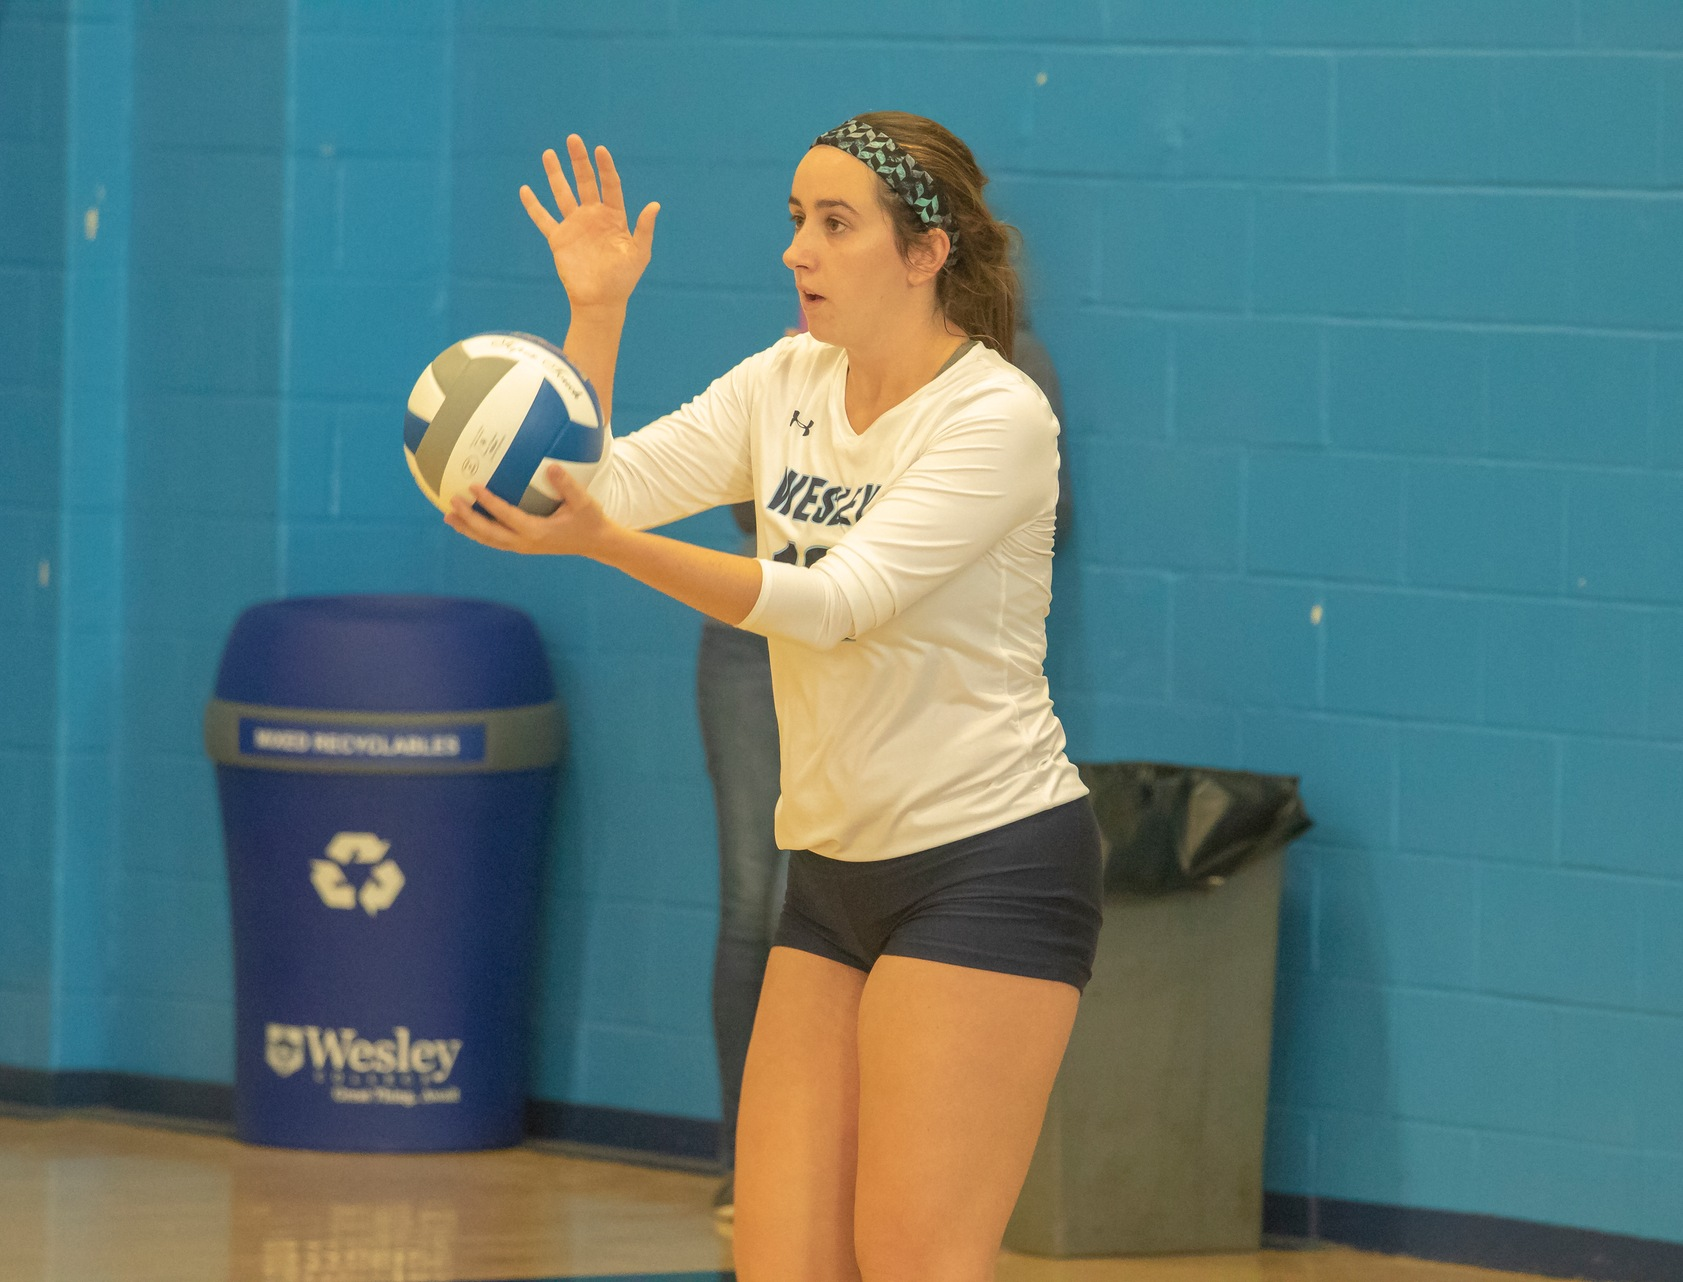 Wesley Volleyball won 3-1 in four sets against the Bowie State Bulldogs